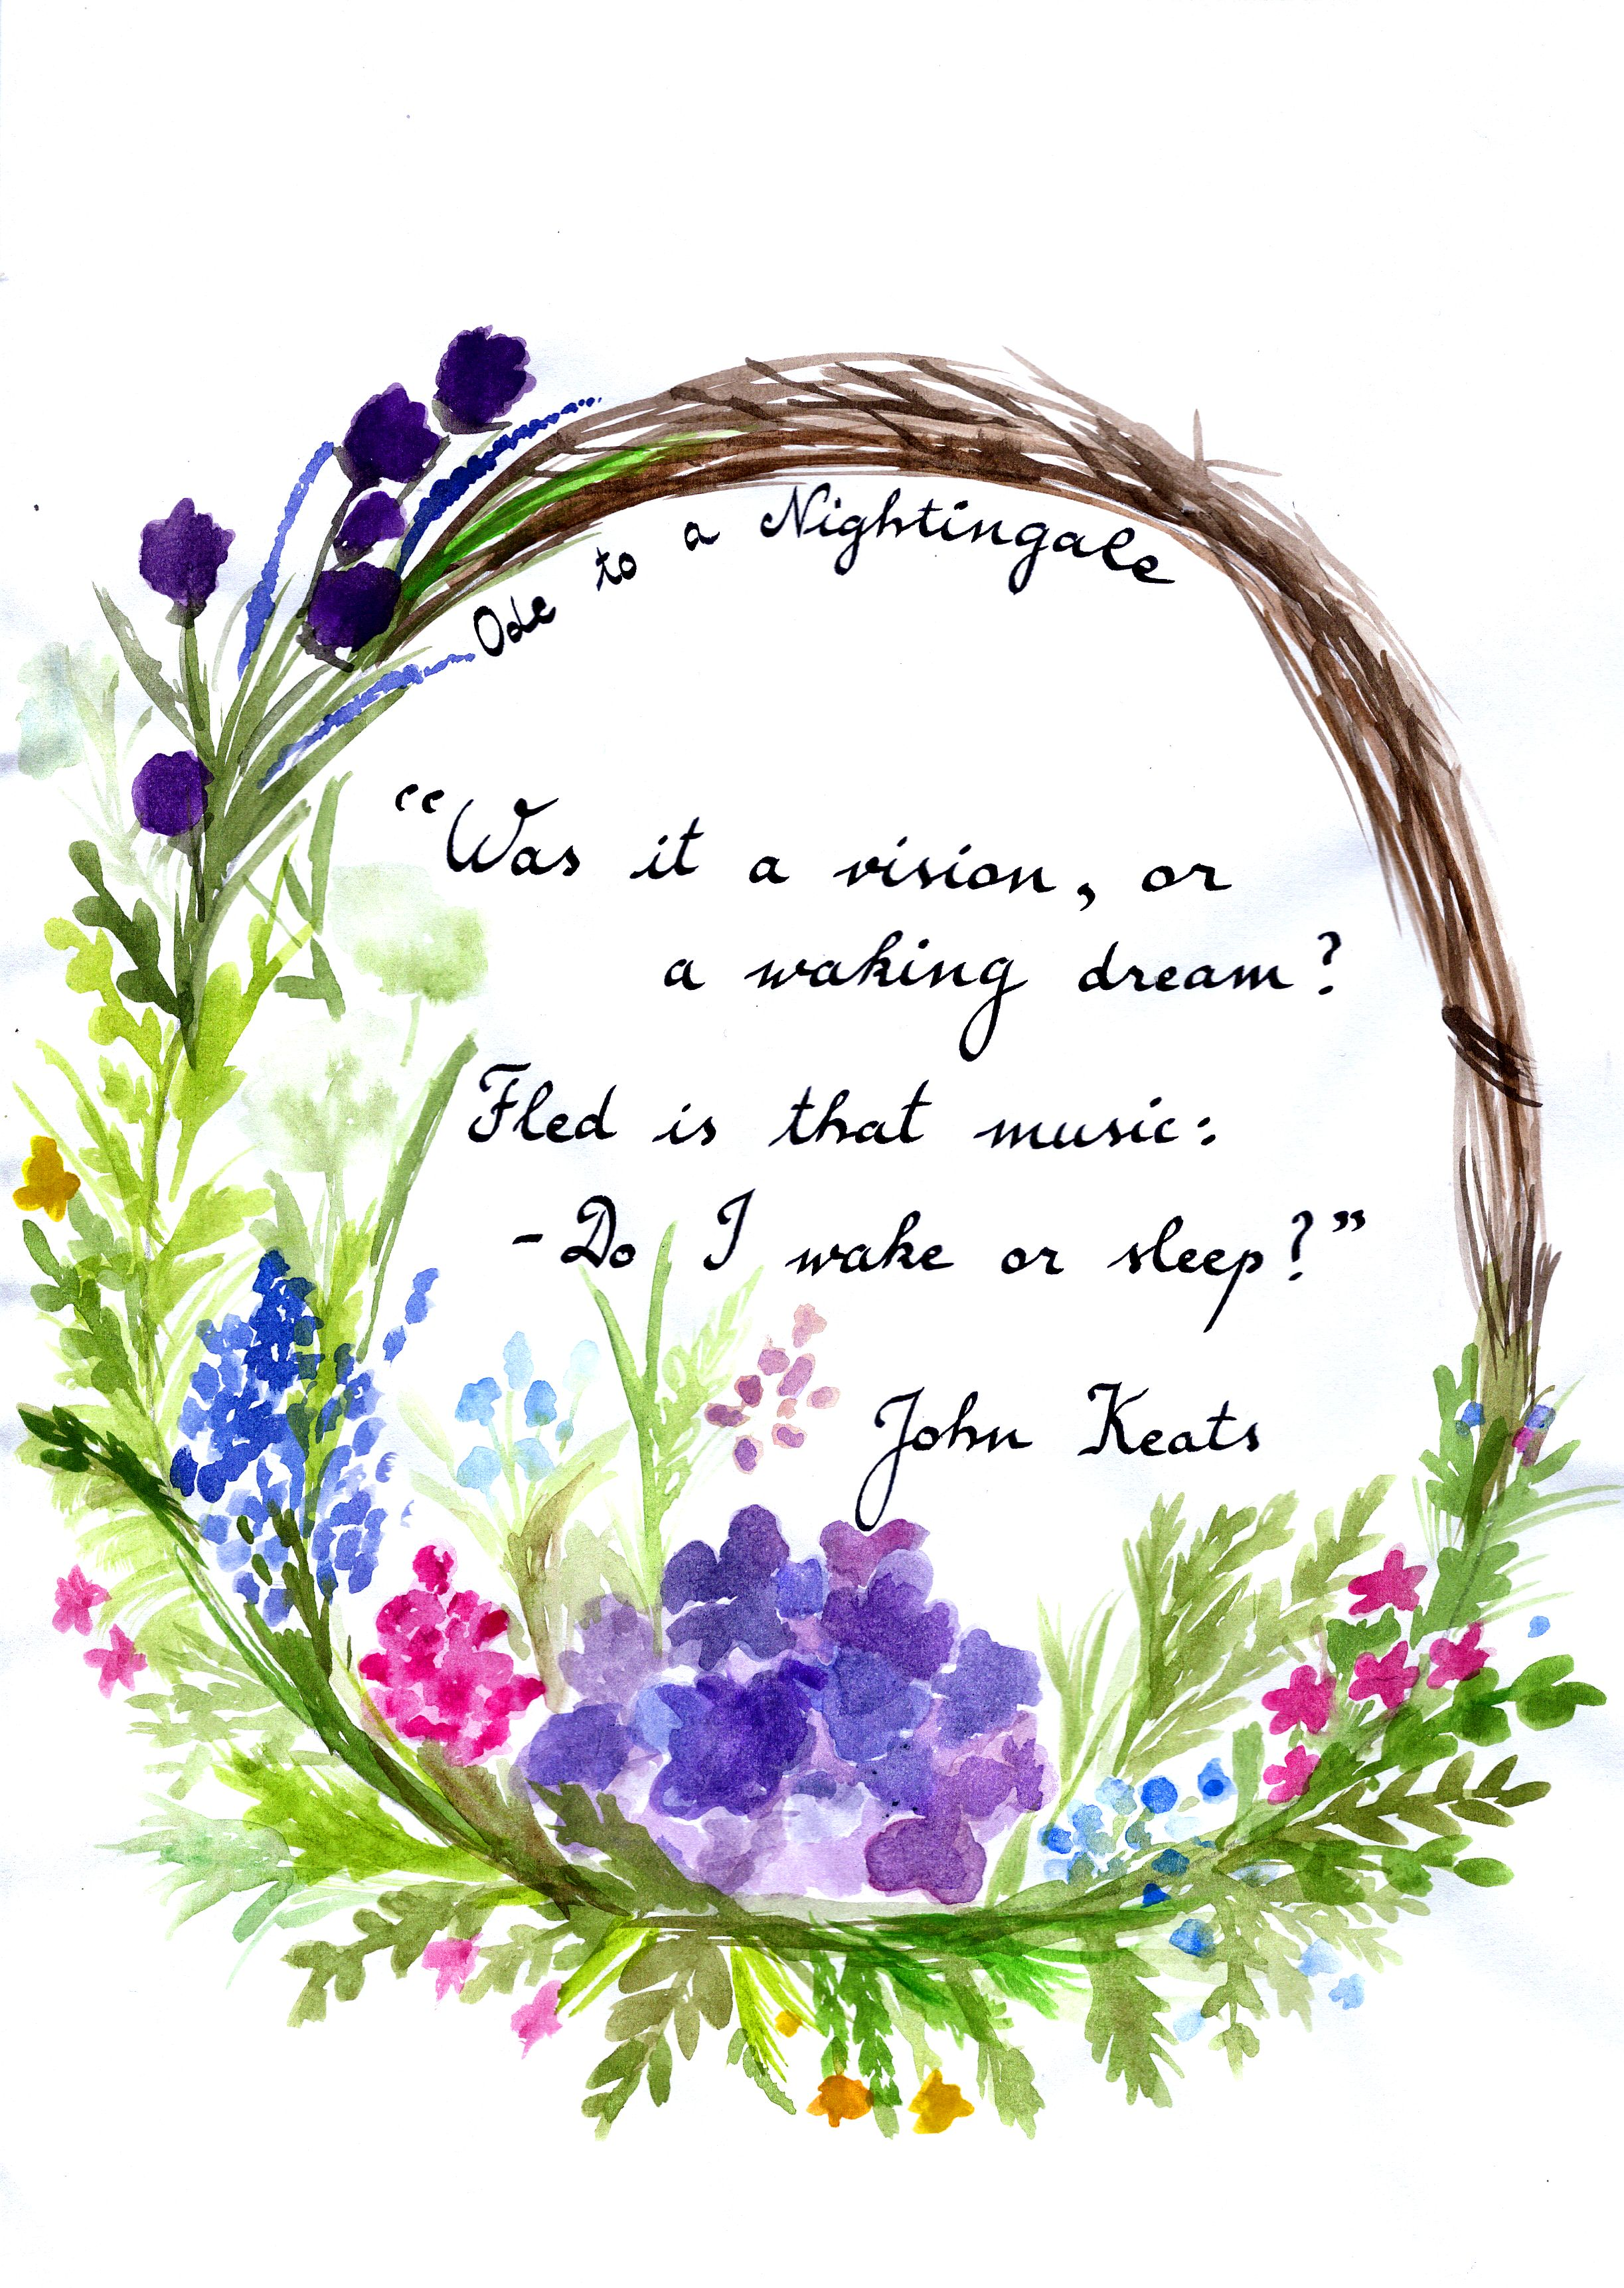 john keats ode to a nightingale quotes books pinteres  john keats ode to a nightingale quotes books more